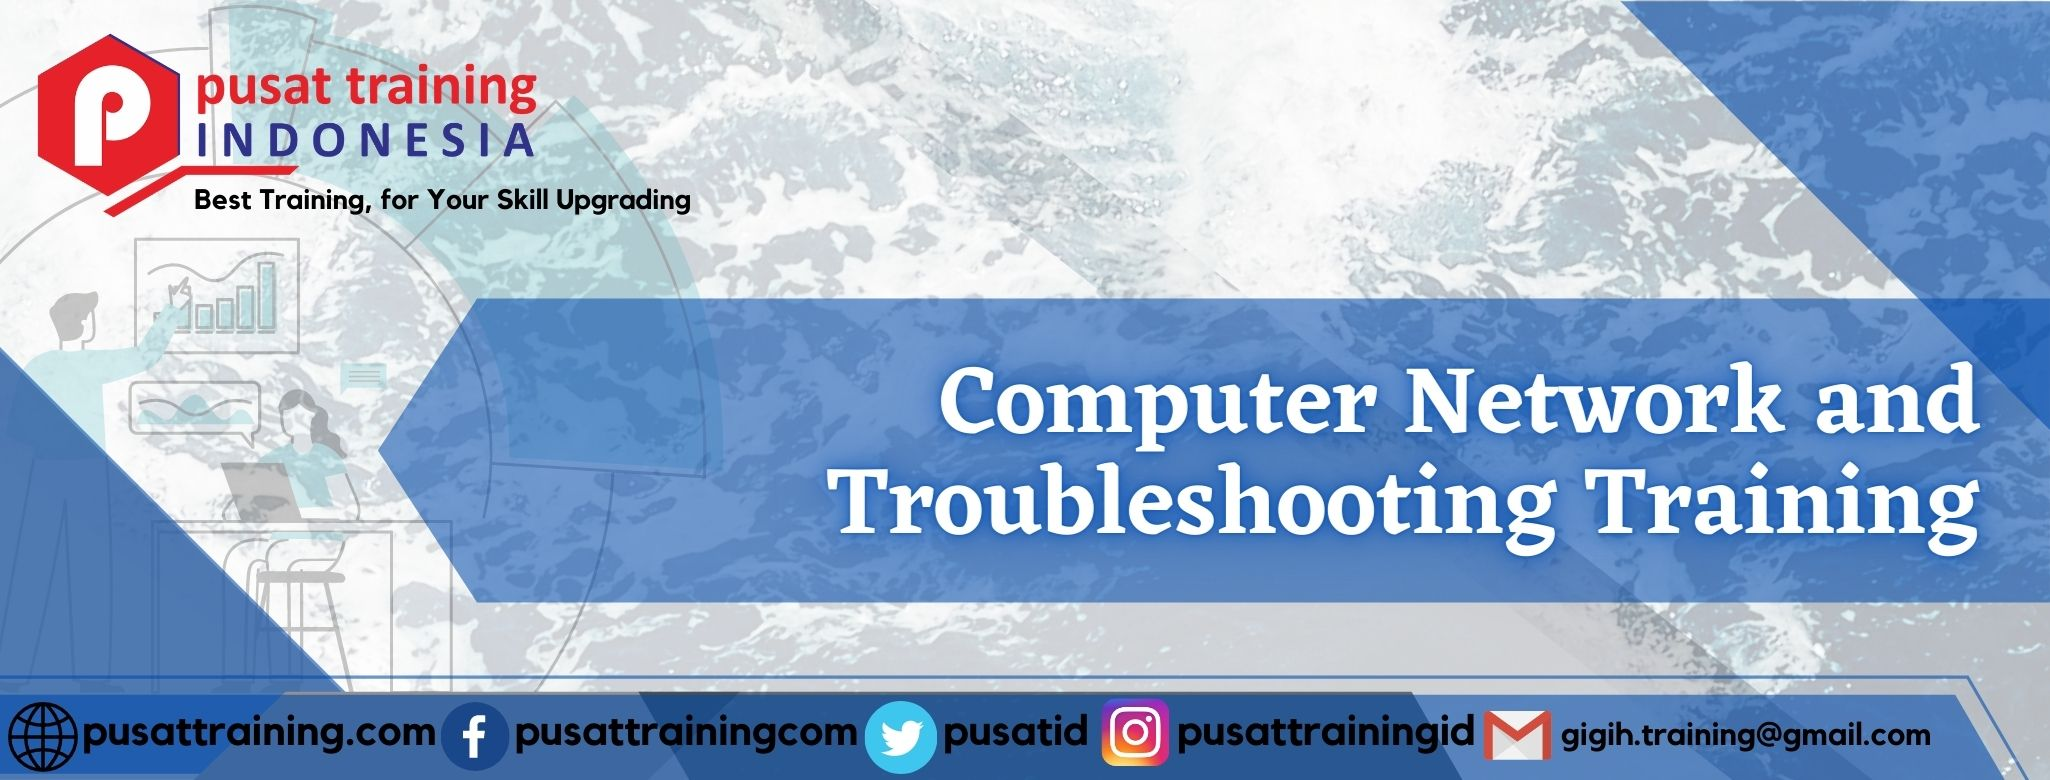 Computer Network and Troubleshooting Training